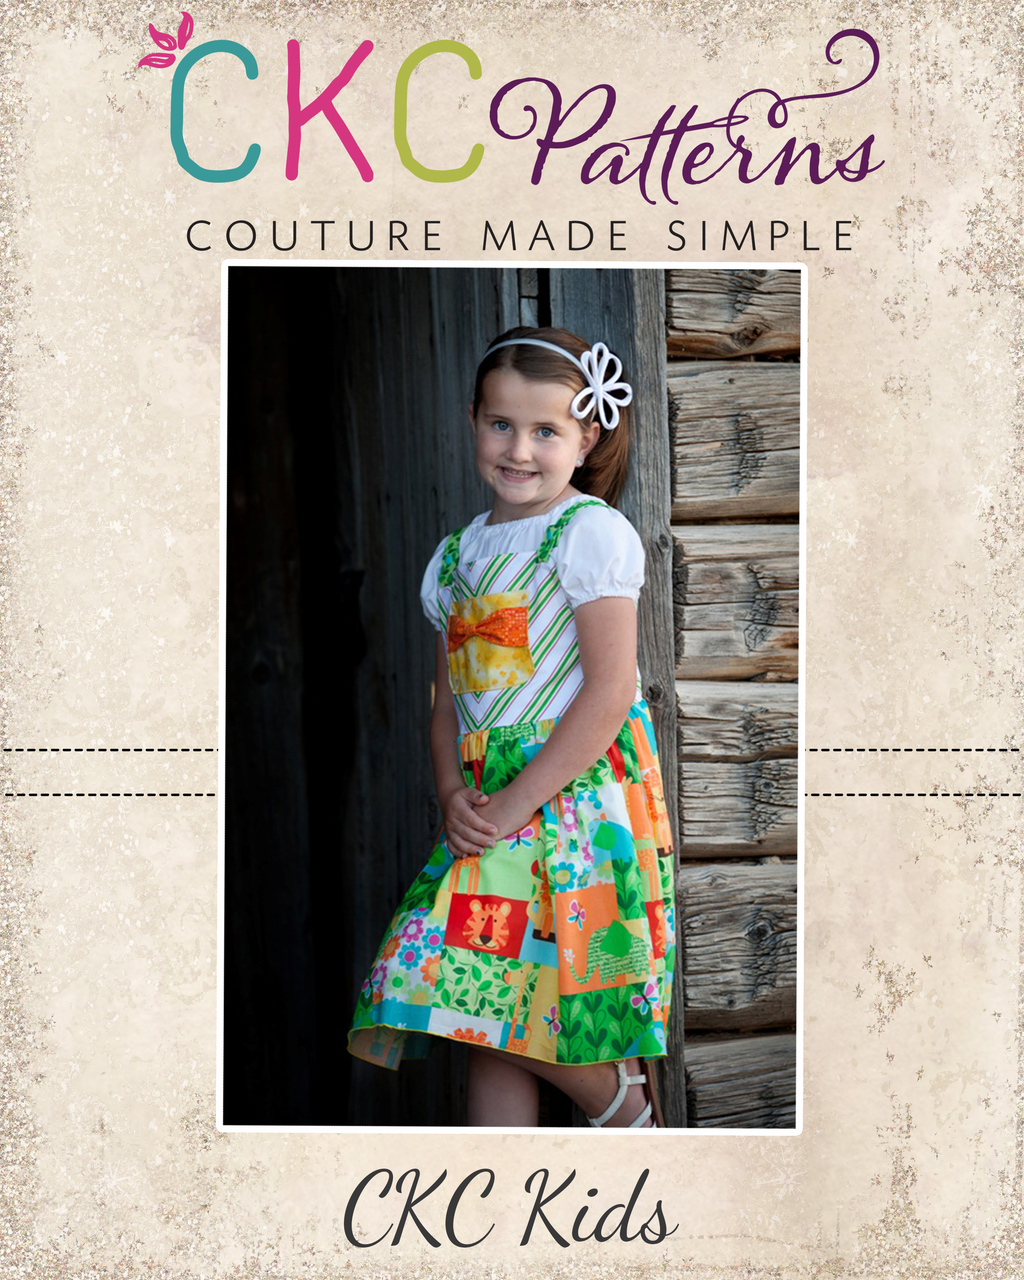 Jaclyn's Jumper Dress Sizes 6/12m to 15/16 Kids PDF Pattern